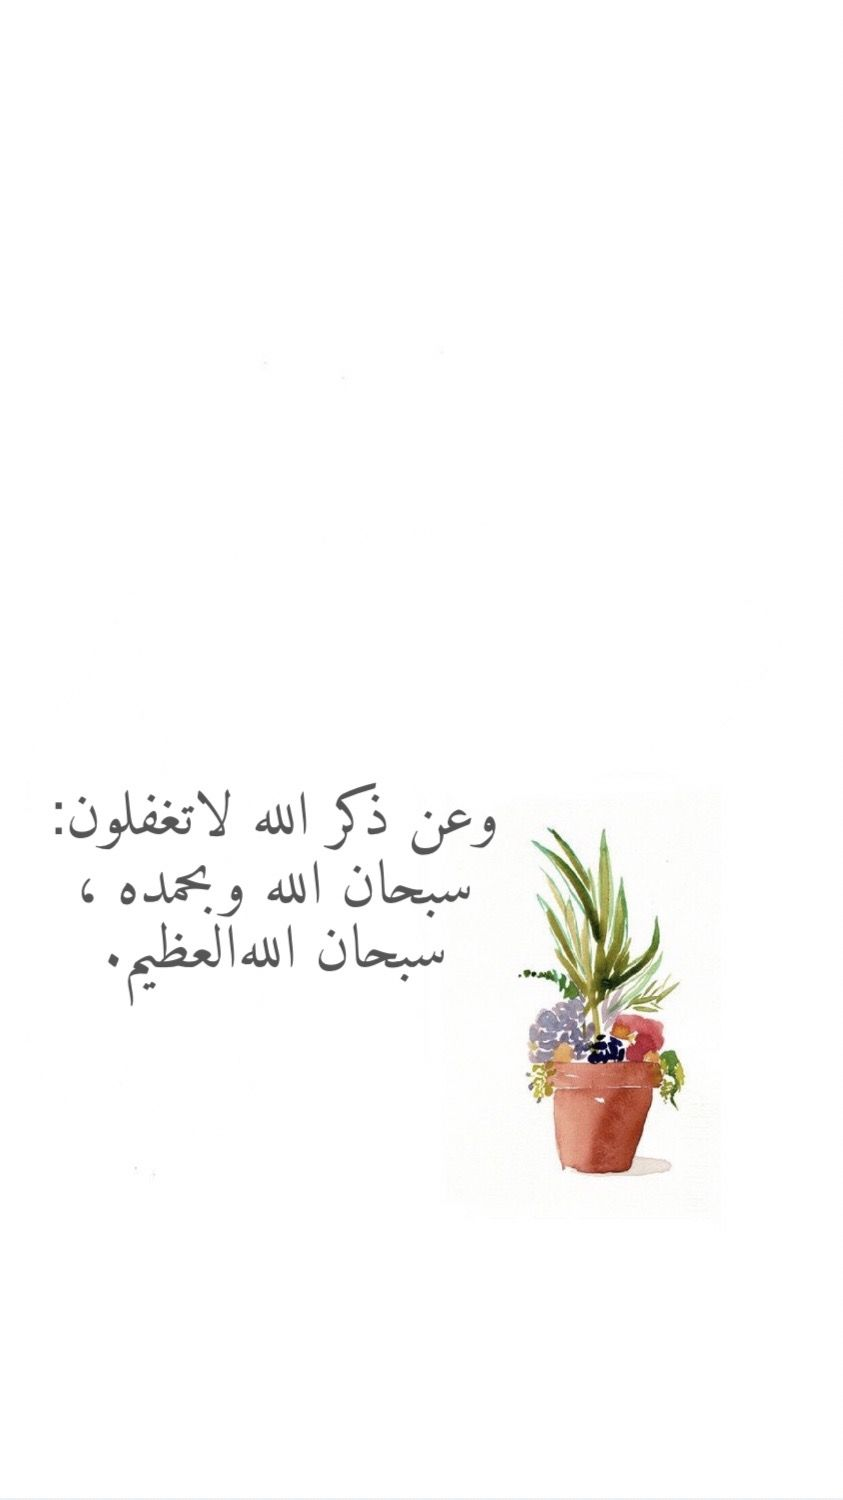 Pin By Noon Azaew On روحانيات Photo Quotes Islamic Quotes Islamic Wallpaper